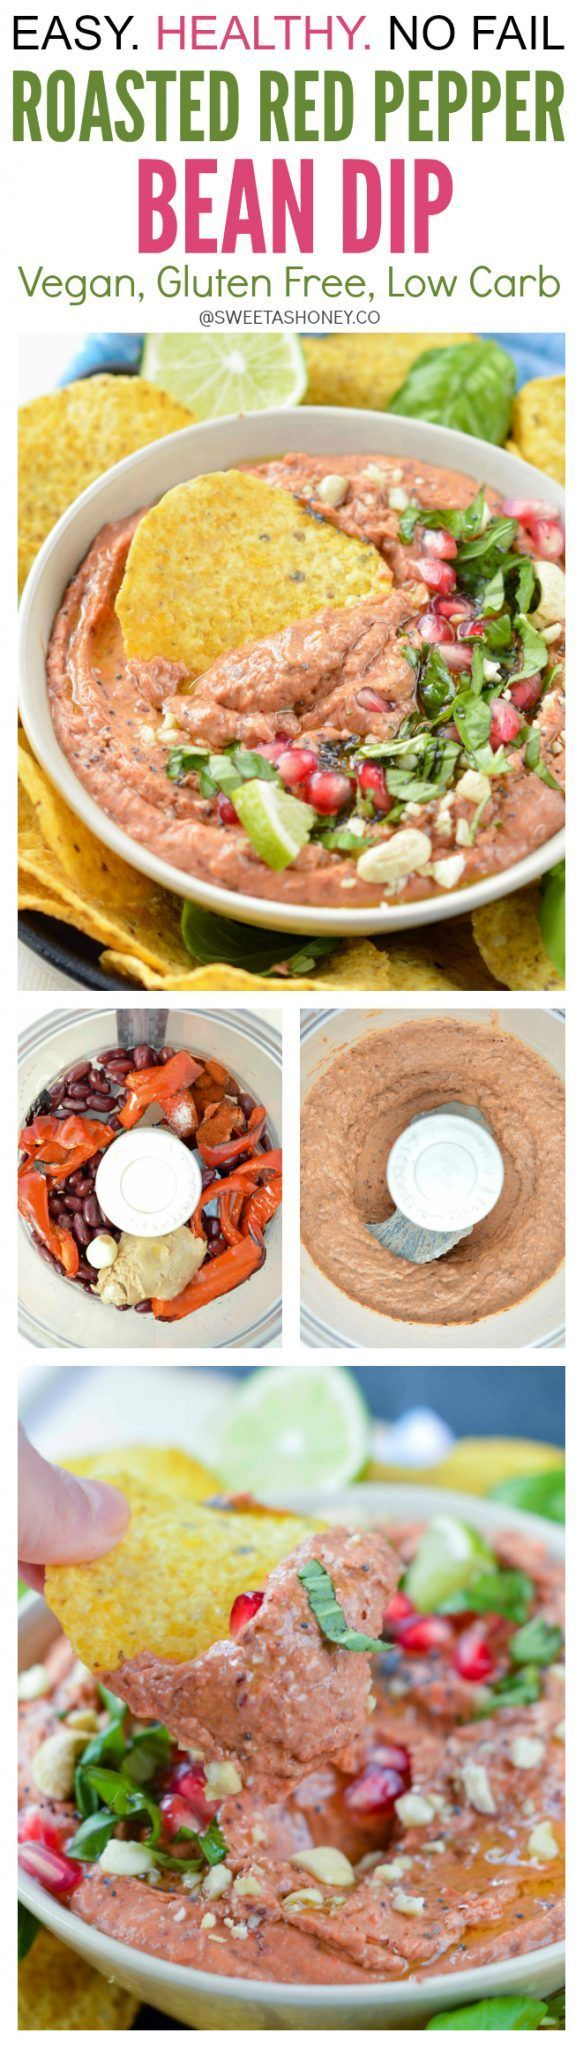 This Easy Roasted Red Pepper Bean Dip Recipe is an Healthy Dip alternative to hummus recipes. Ready in 10 minutes, packed with protein from red kidney beans and nut butter. A great vegan appetizer to dip mexican corn chips or a lovely vegan spread for sandwiches. Best summer dip